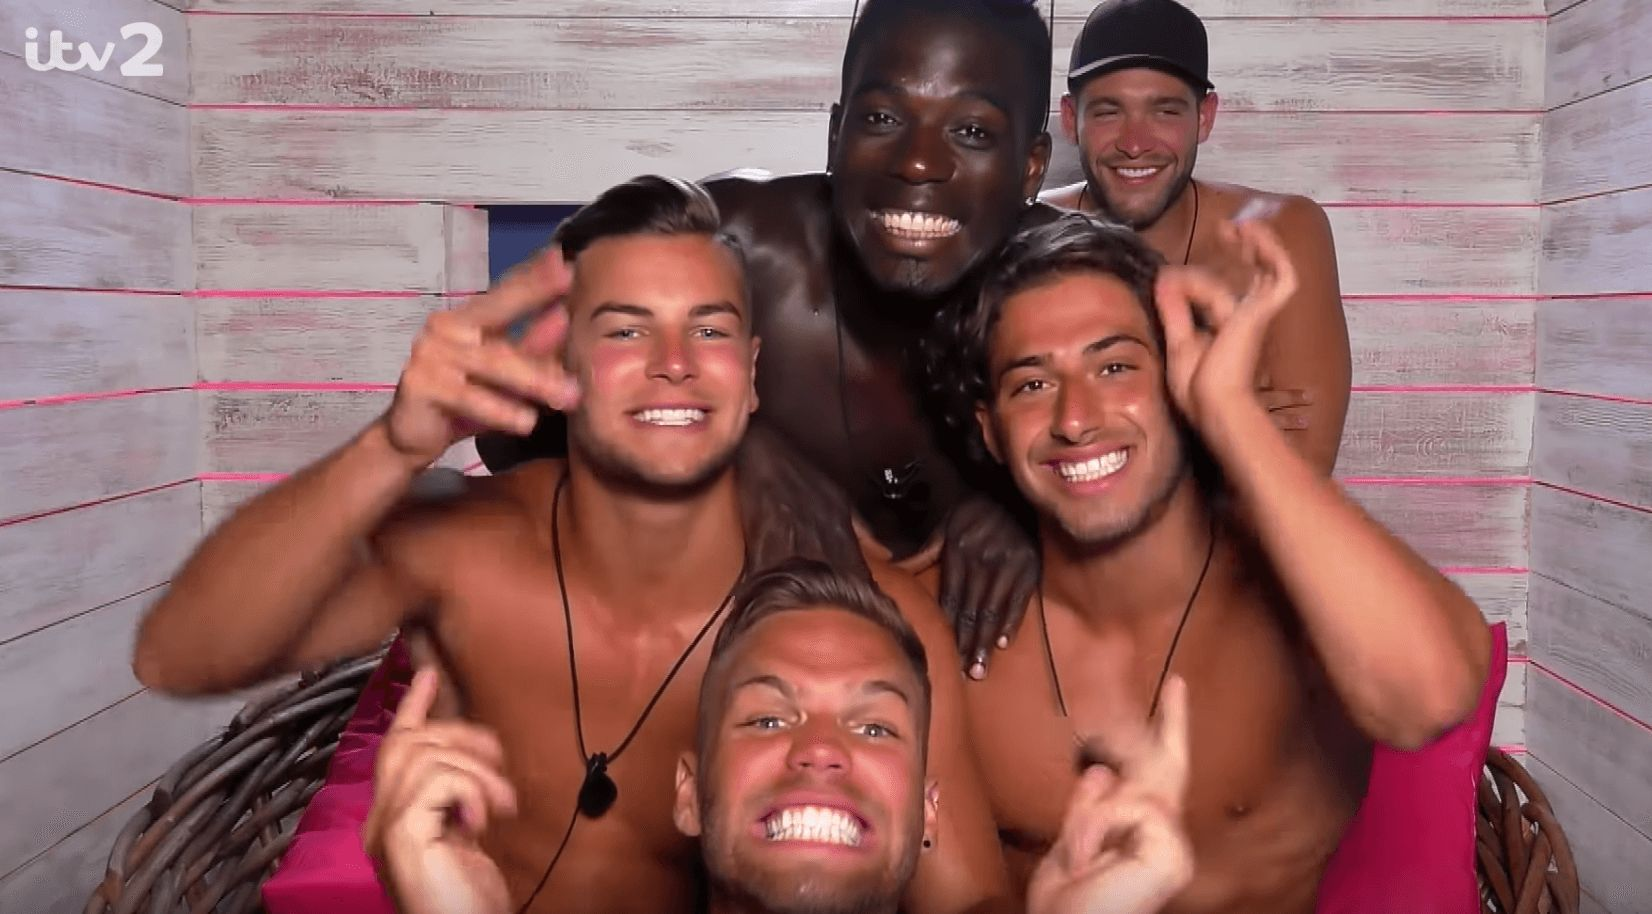 Image may contain: Love Island 2019 applications, Love island, Love Island 2019, applications, how to apply, Clothing, Apparel, People, Party, Female, Selfie, Photo, Photography, Portrait, Laughing, Smile, Face, Human, Person